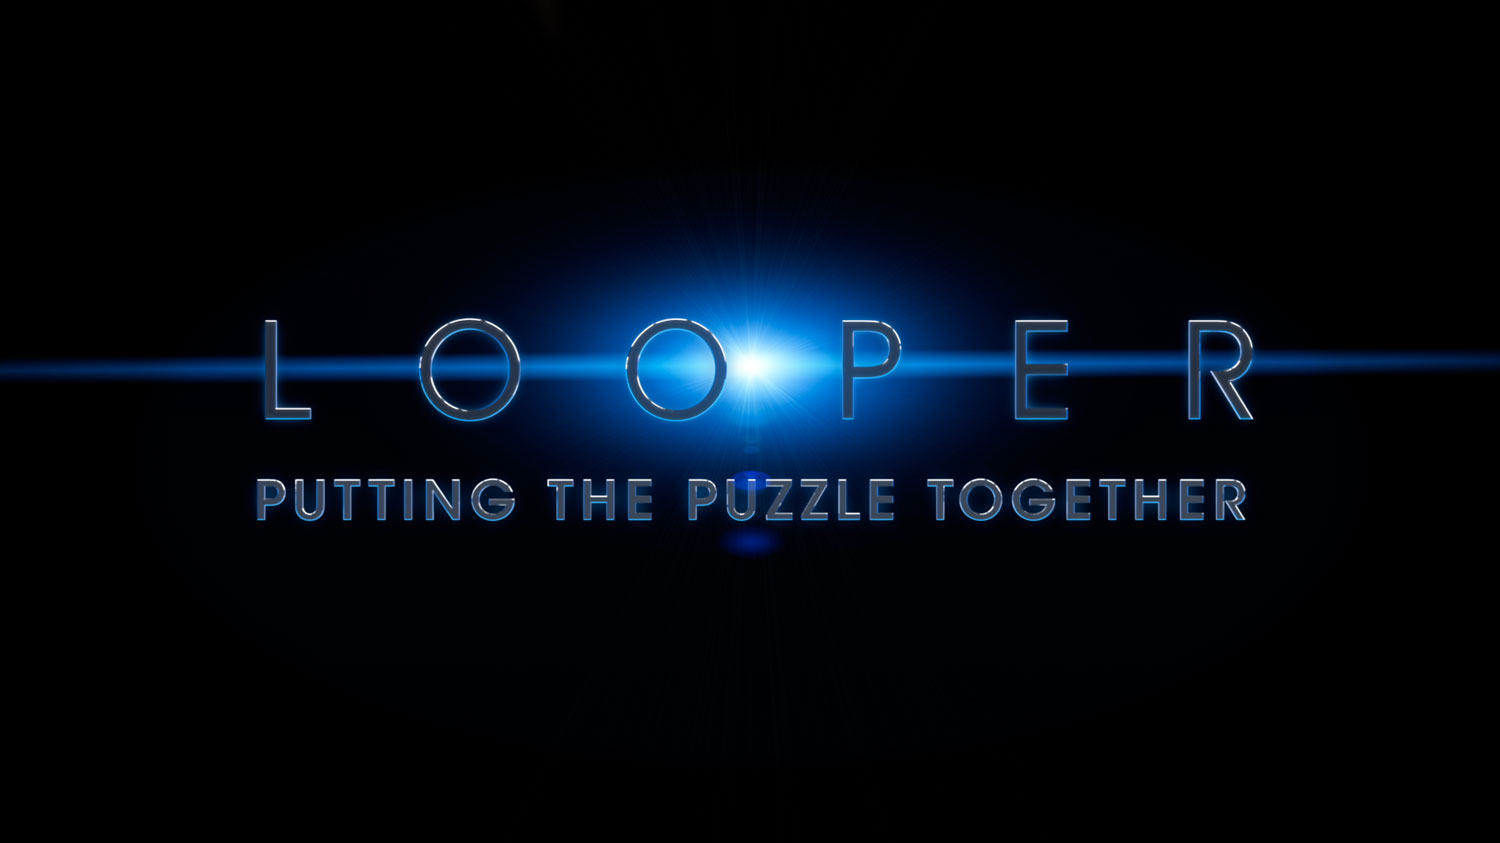 Looper: Putting the Puzzle Together